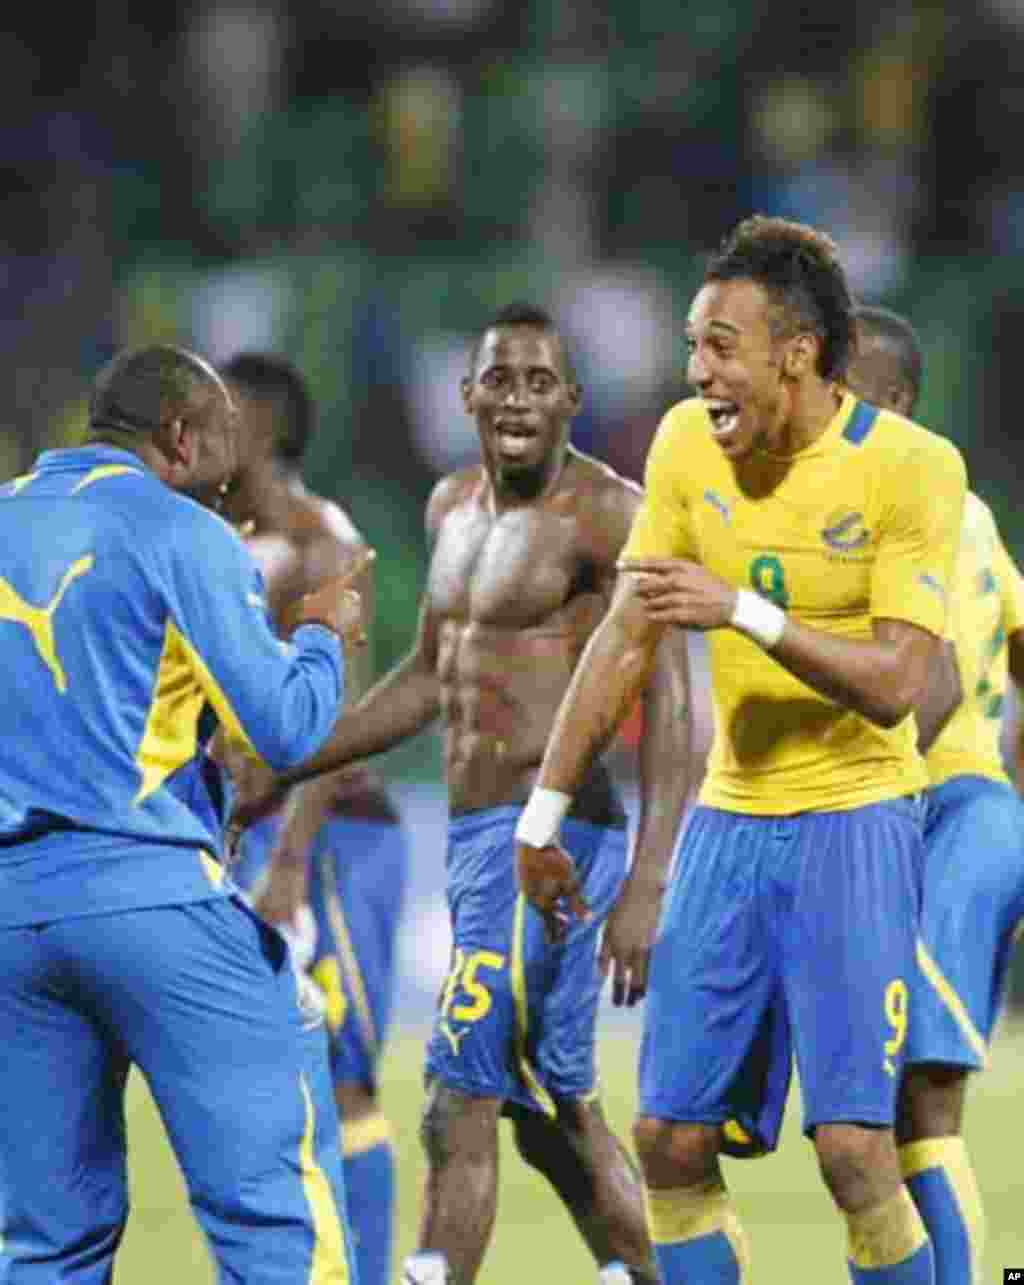 Gabon's Pierre Emerick Aubameyang (9) celebrates with teammates after they won their African Nations Cup Group C soccer match against Tunisia at Franceville Stadium in Gabon January 31, 2012.